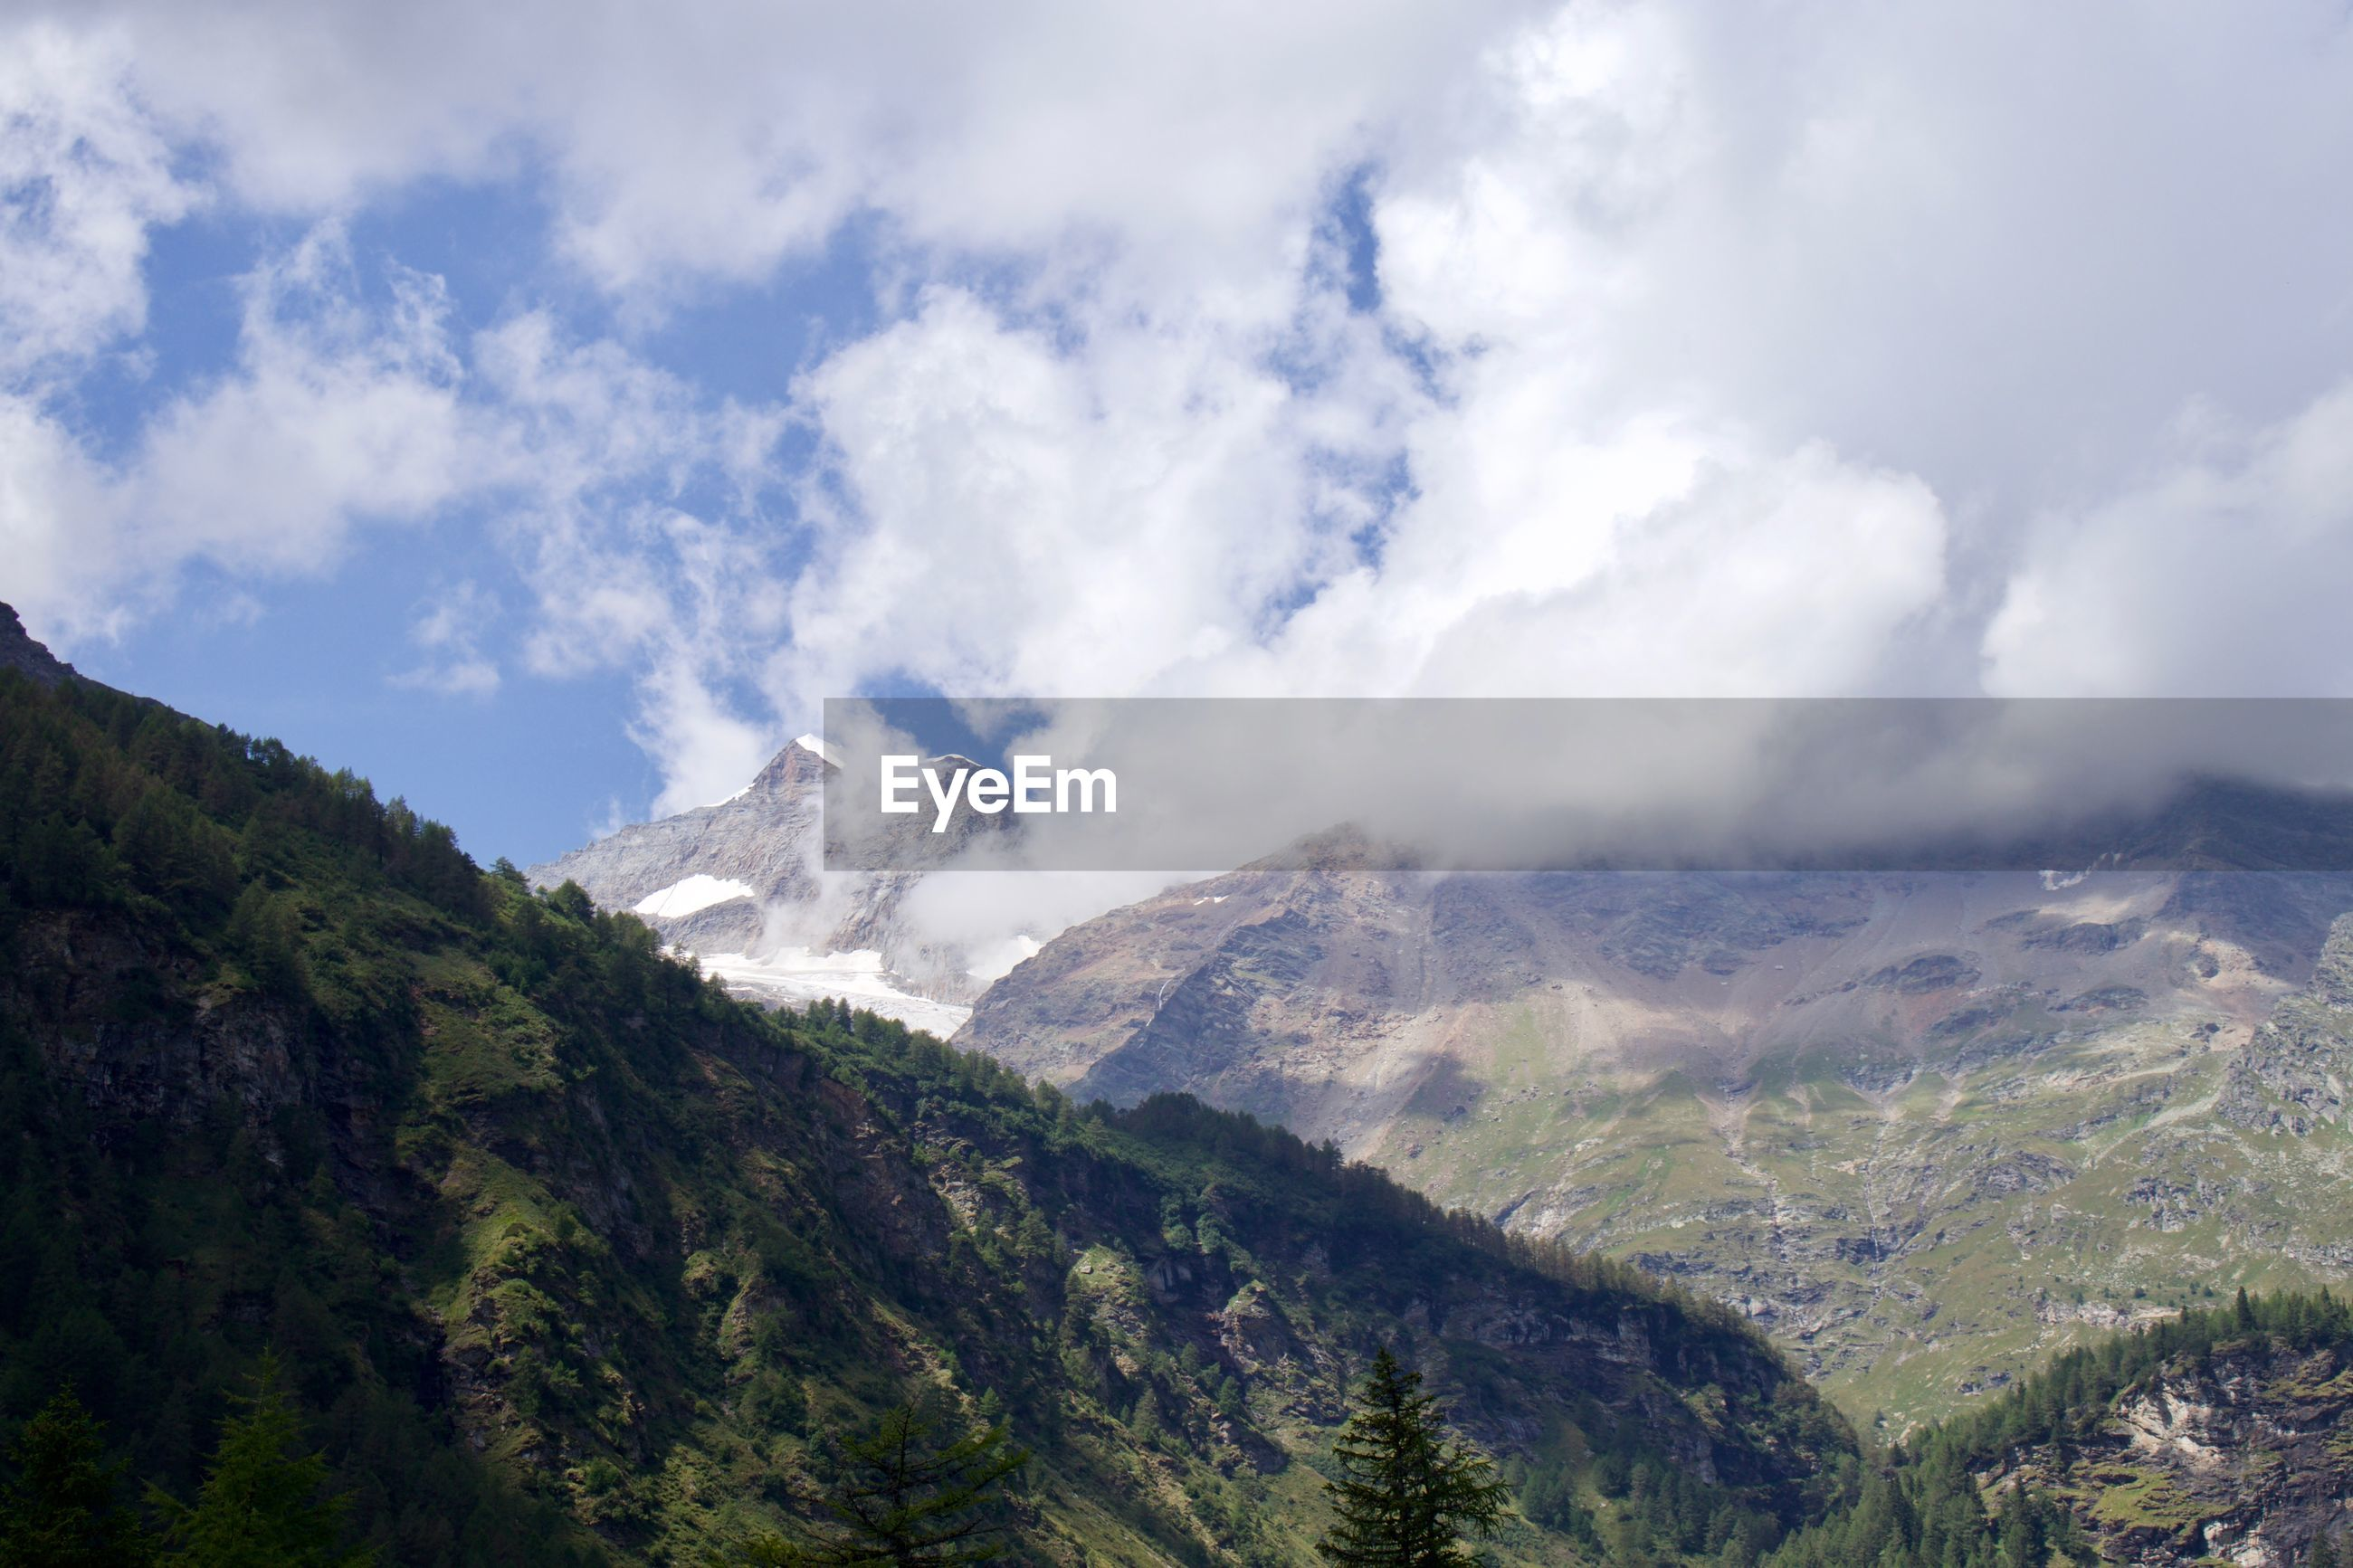 SCENIC VIEW OF MAJESTIC MOUNTAINS